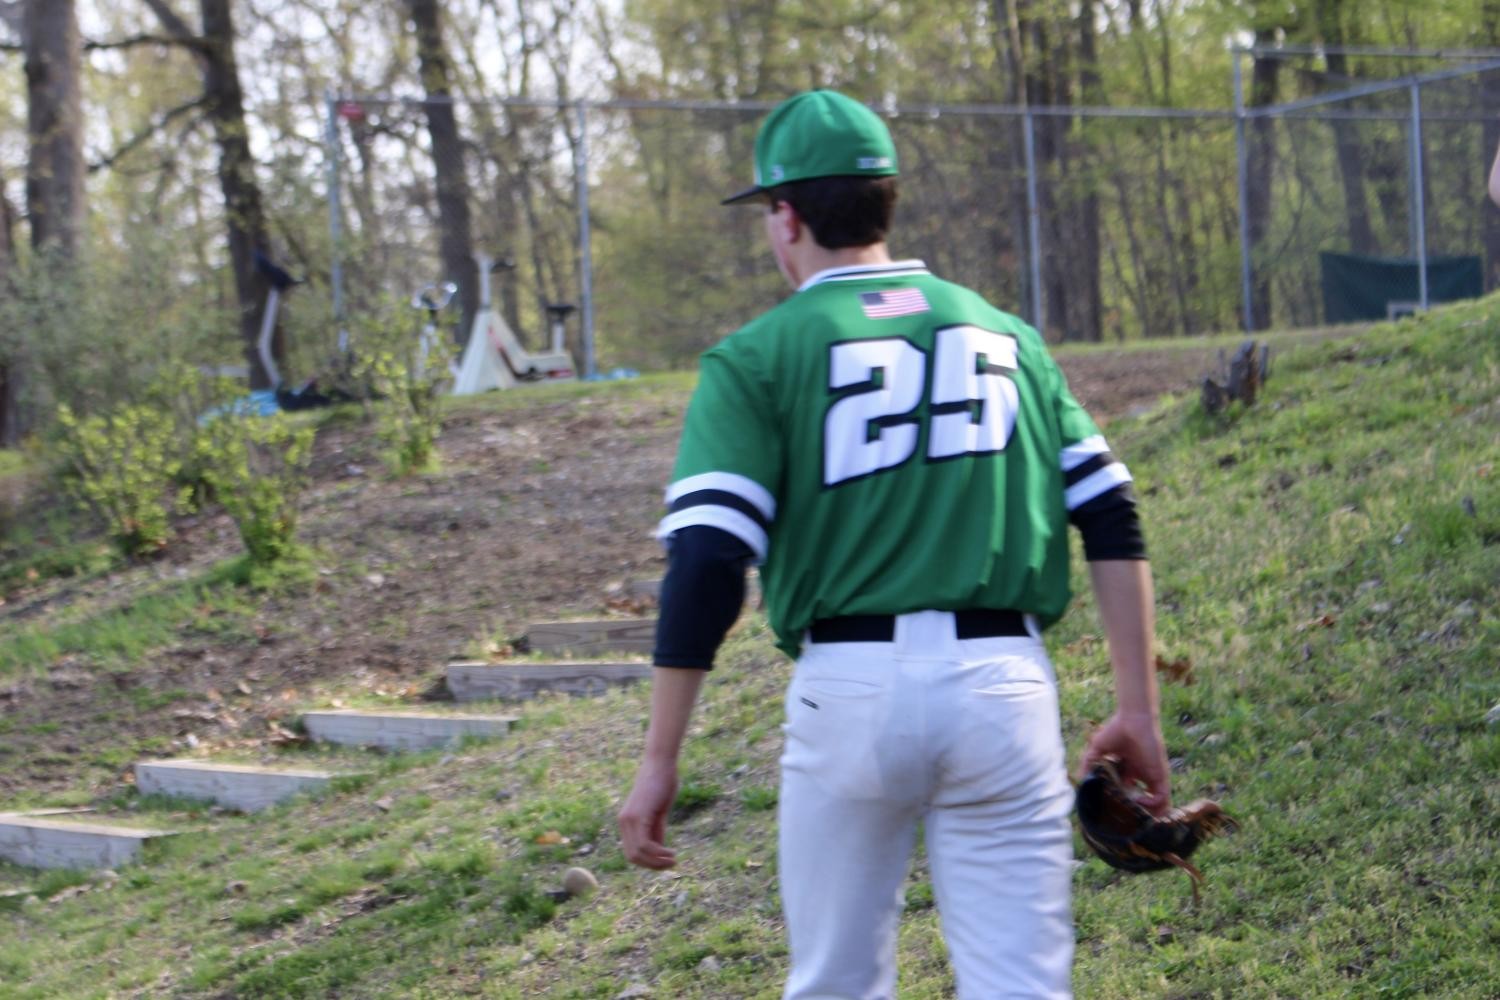 Pascack+Valley+starting+pitcher+Riley+Weis+before+a+game.+Weis+threw+6+innings+and+got+the+no-decision+in+PV%27s+3-2+extra+inning+loss+to+Cranford+in+the+Group+3+semifinals.